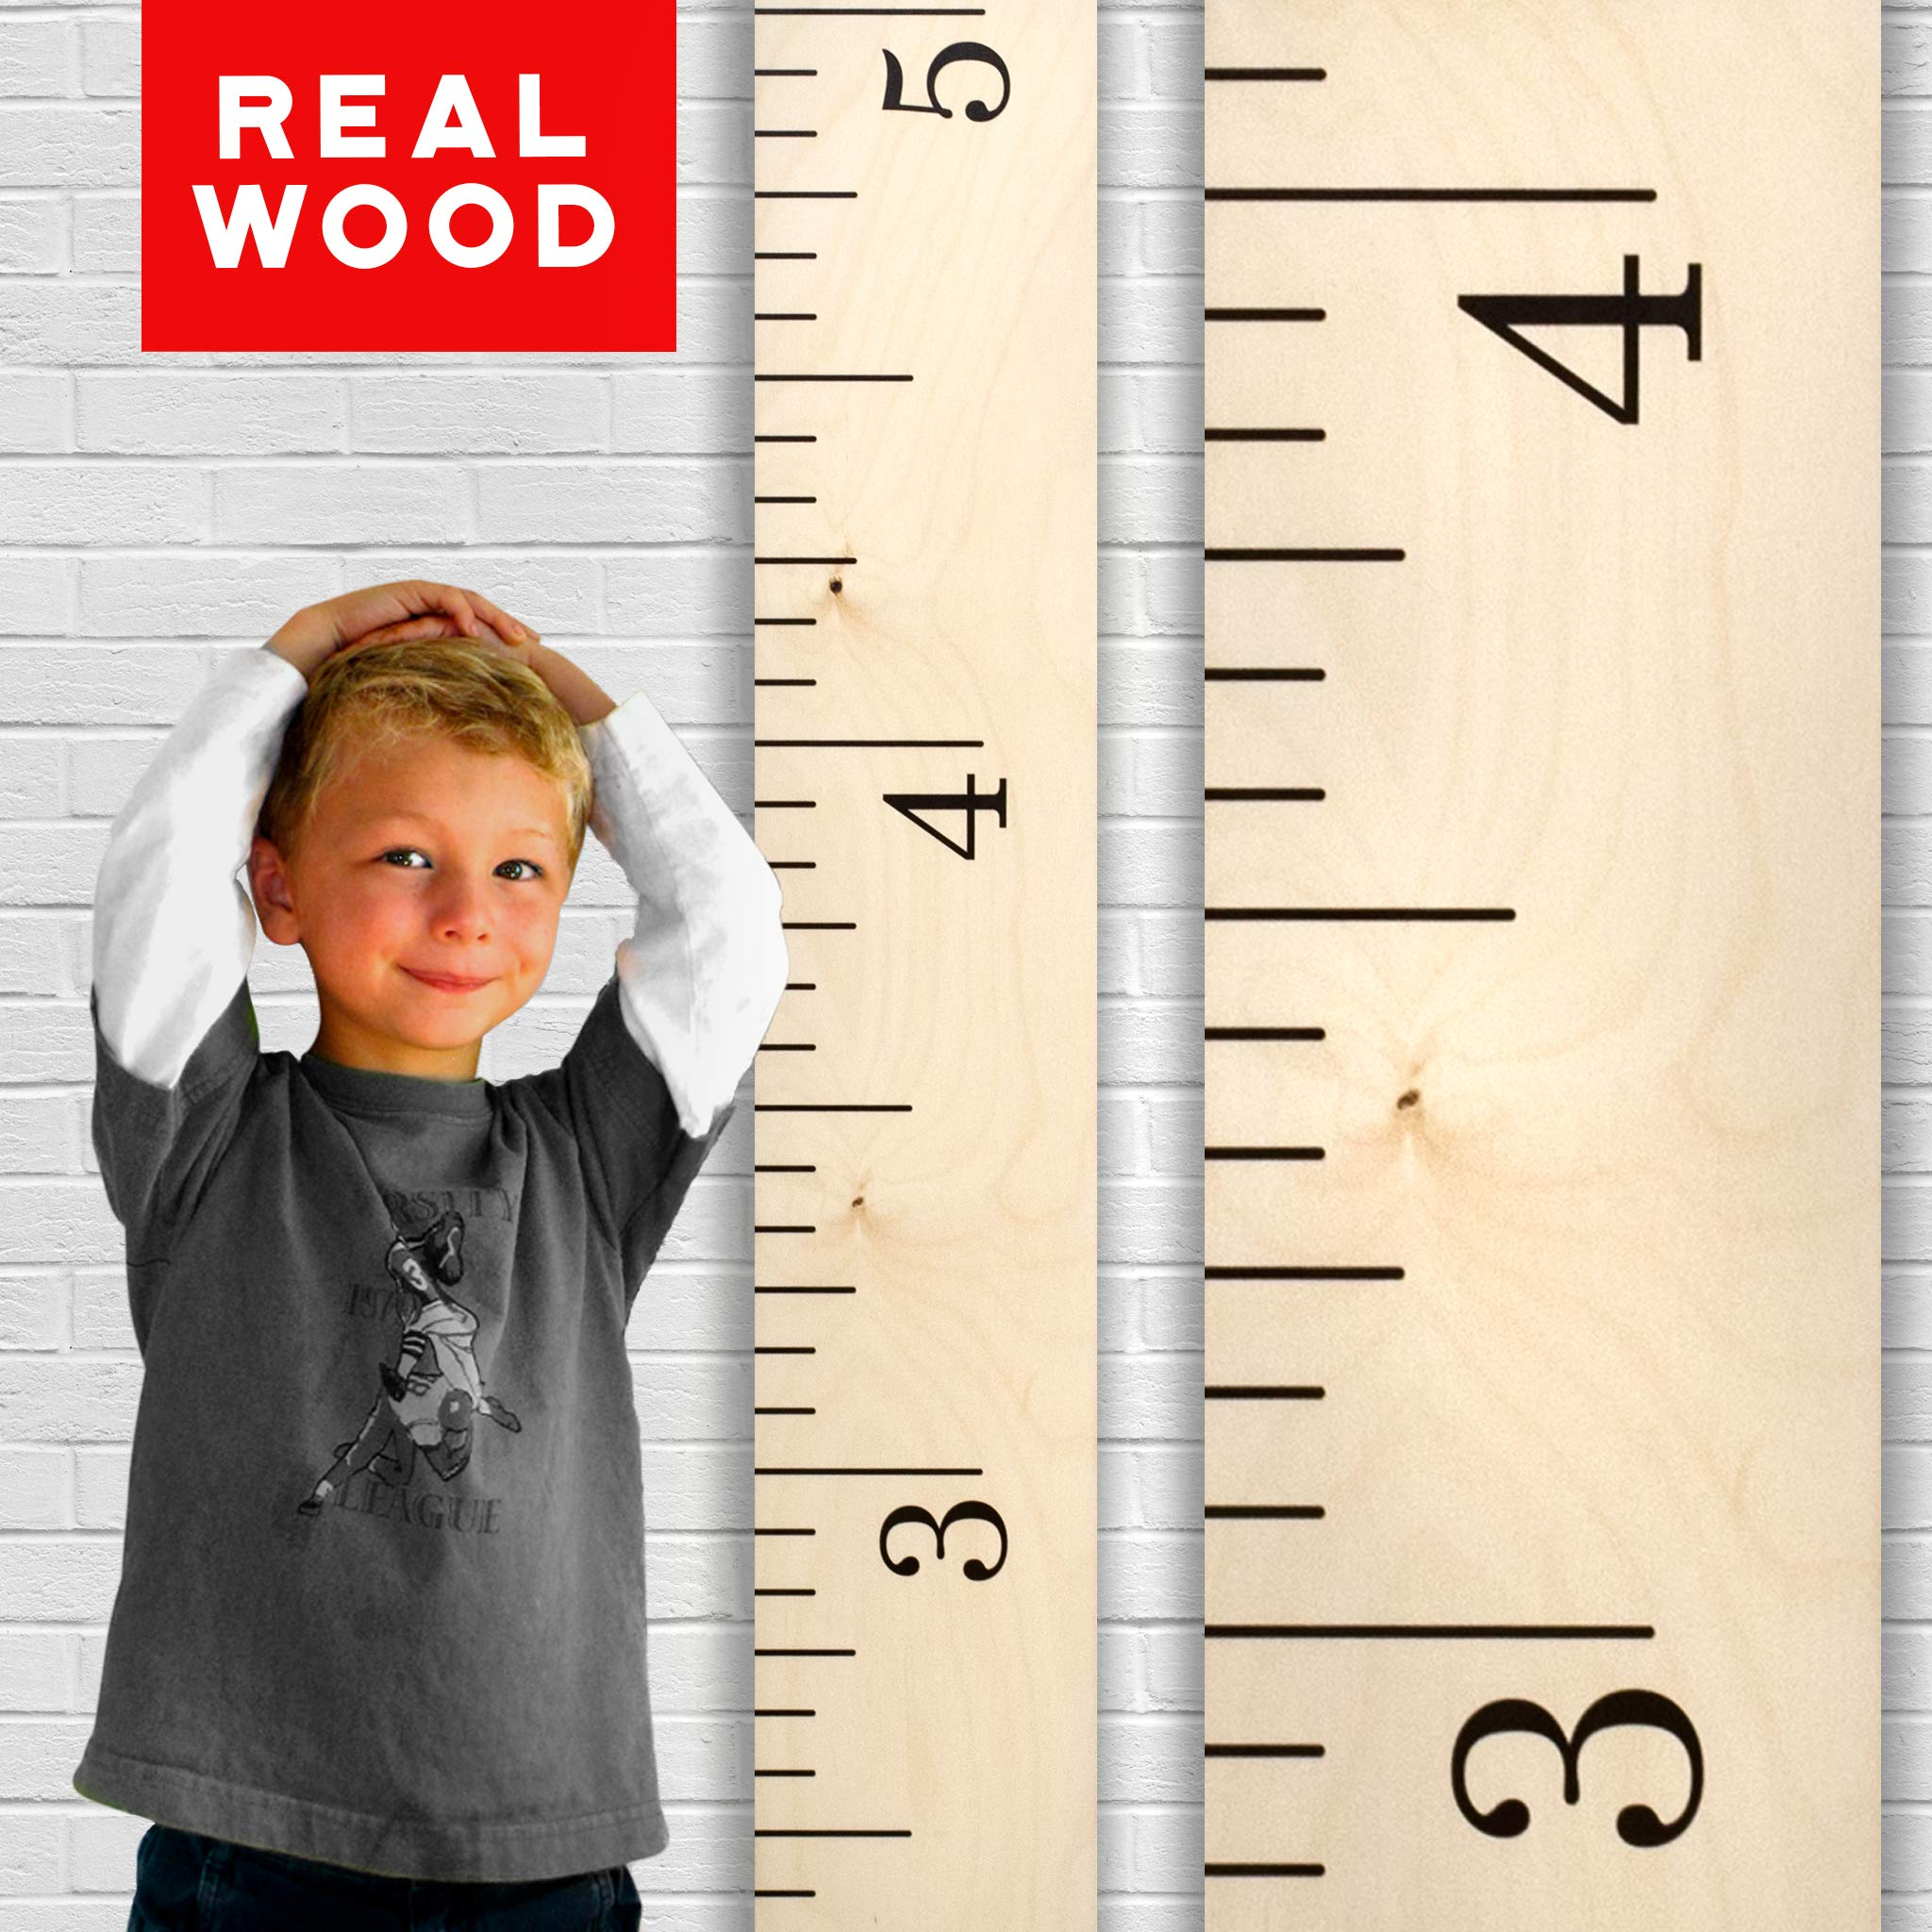 Growth Chart Art | Hanging Wooden Height Growth Chart to Measure Baby, Child, Grandchild - Naked Birch Classic Schoolhouse Ruler with Inches - Wall Decoration for Girls and Boys - 58''x5.75''